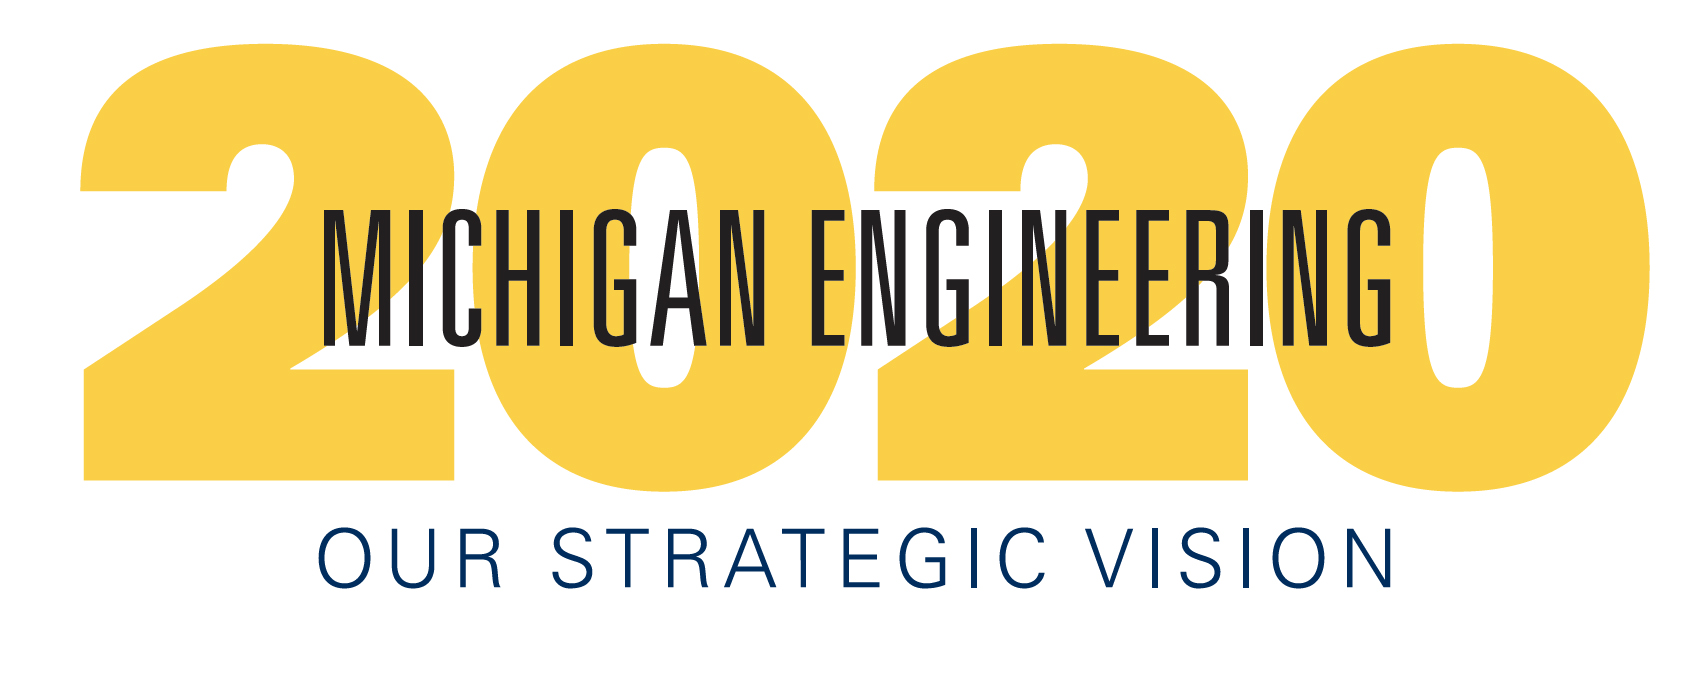 Michigan Engineering 2020 logo